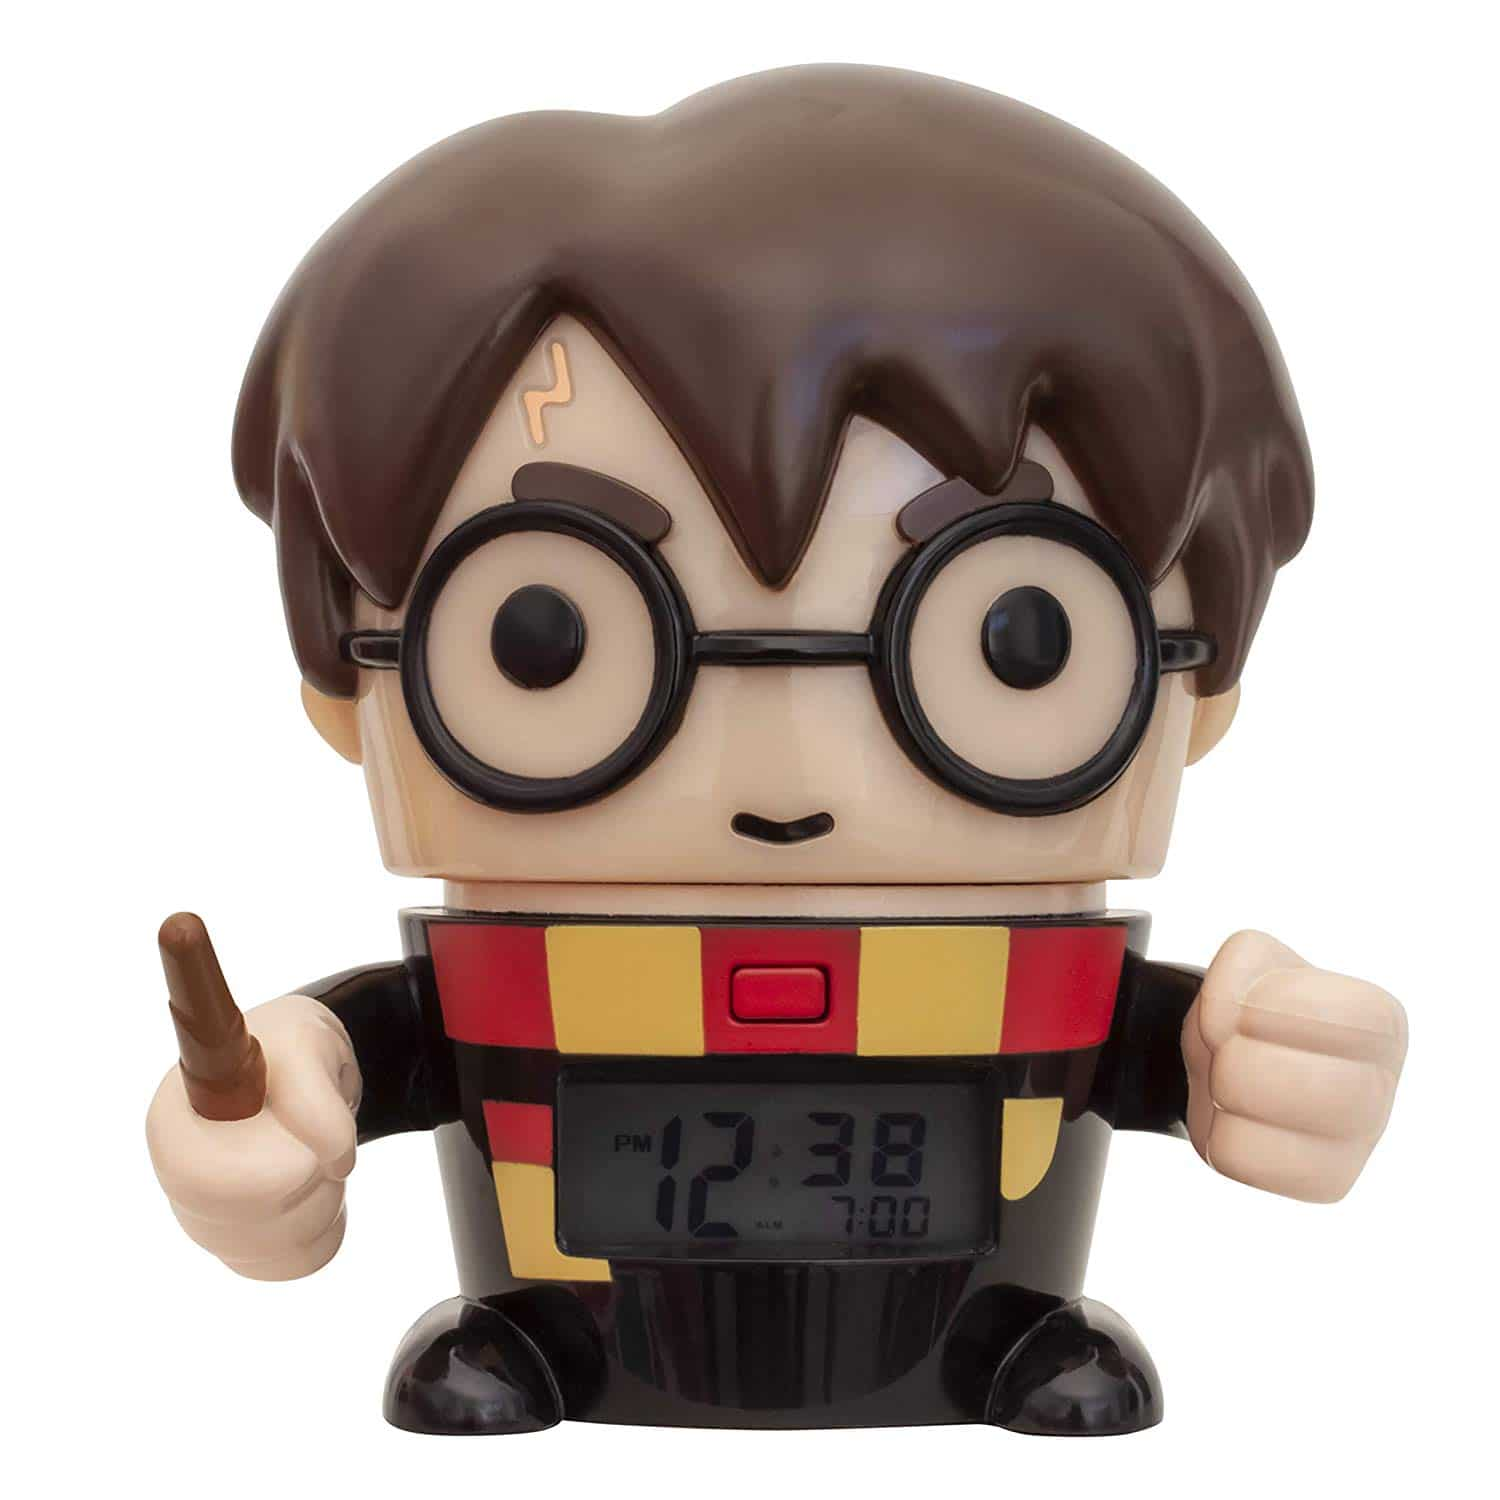 Harry-potter-gifts-alarm-clock